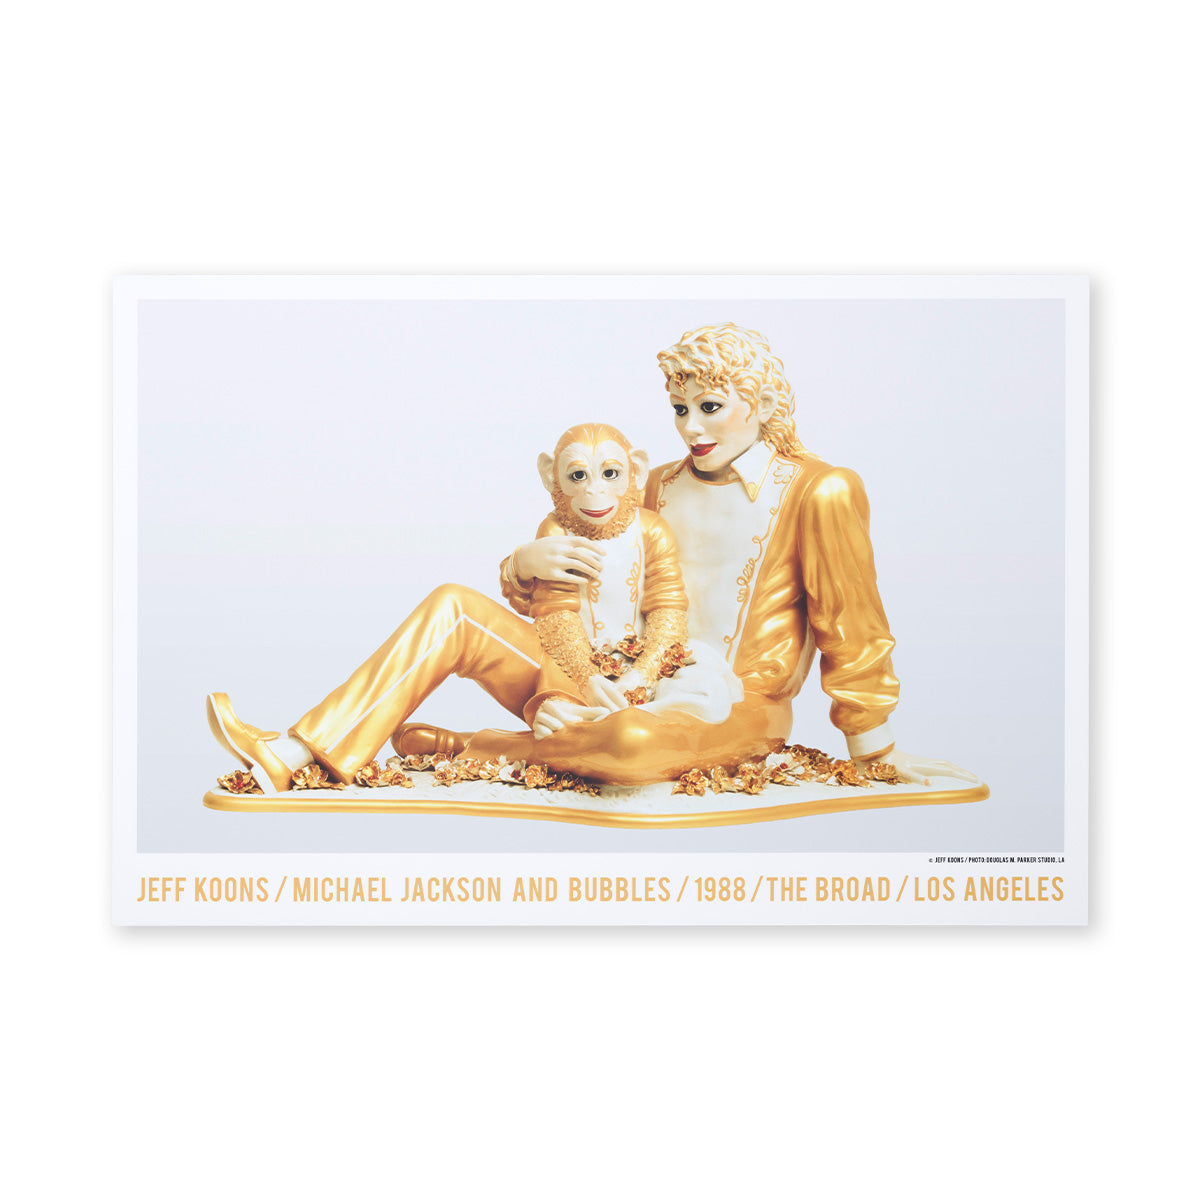 Michael Jackson and Bubbles Poster